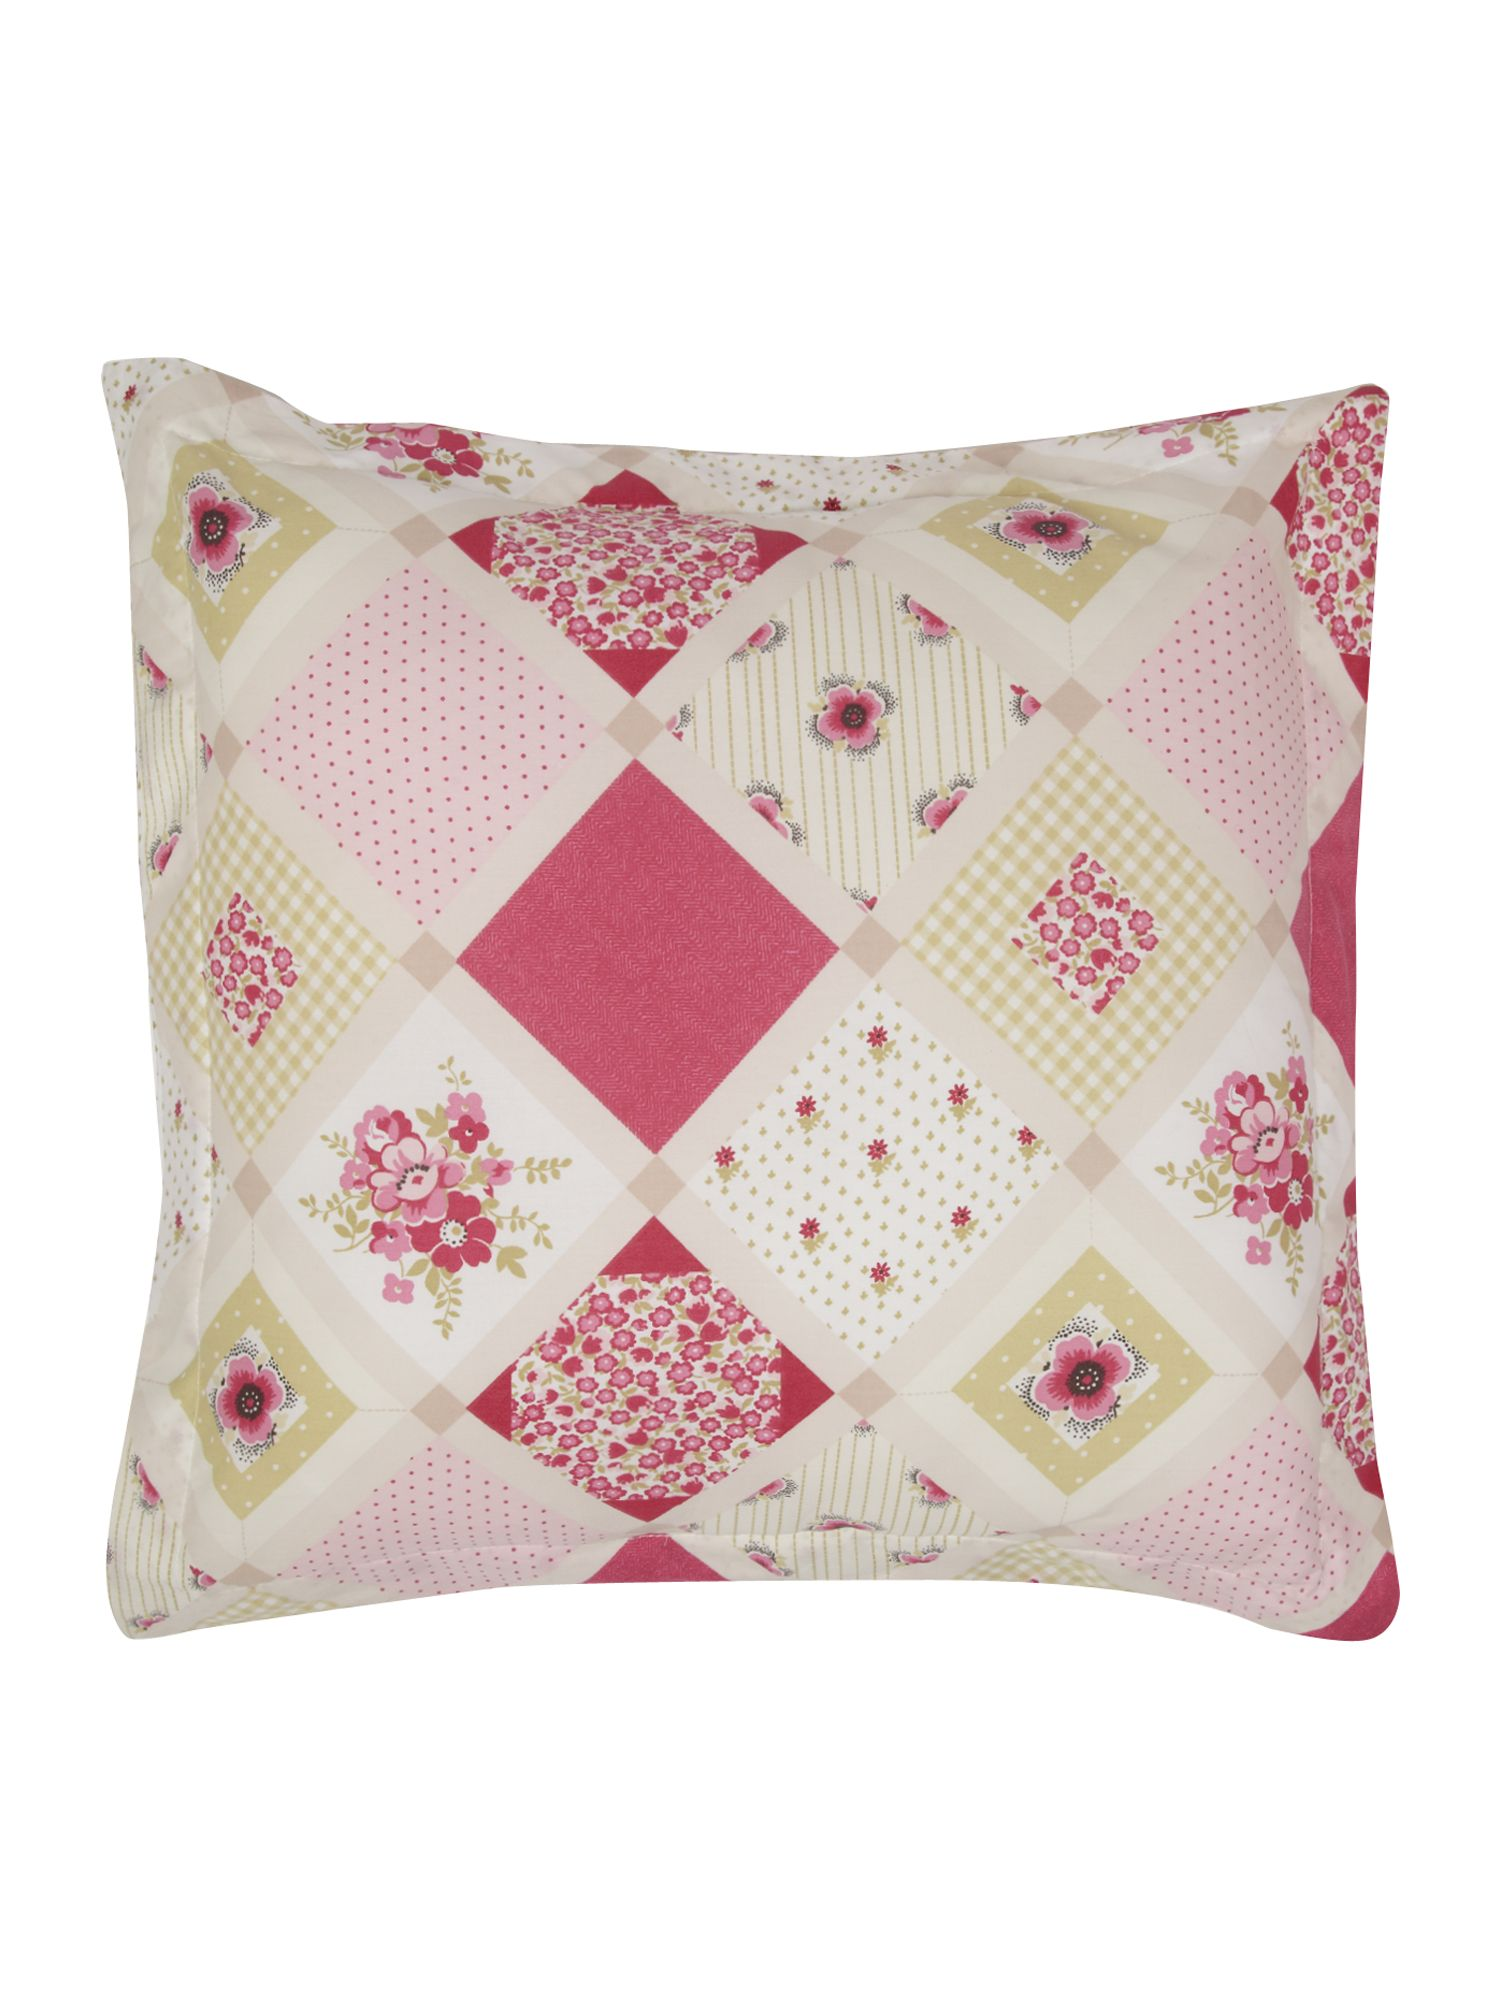 Lottie cushion